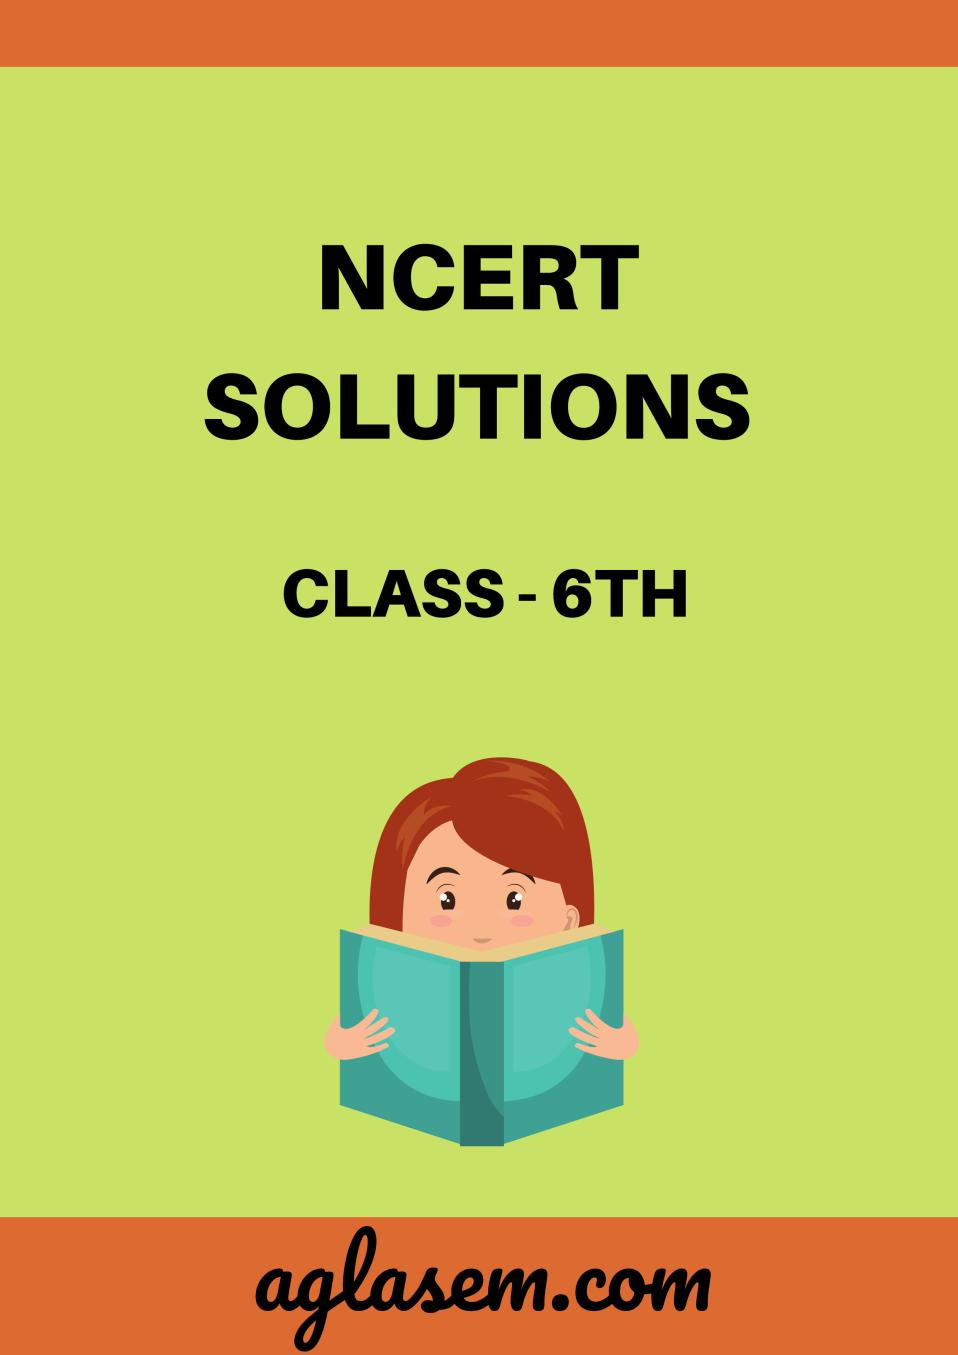 NCERT Solutions Class 6 English : HoneySuckle Unit 6 Who I Am, Part I, MANY VOICES